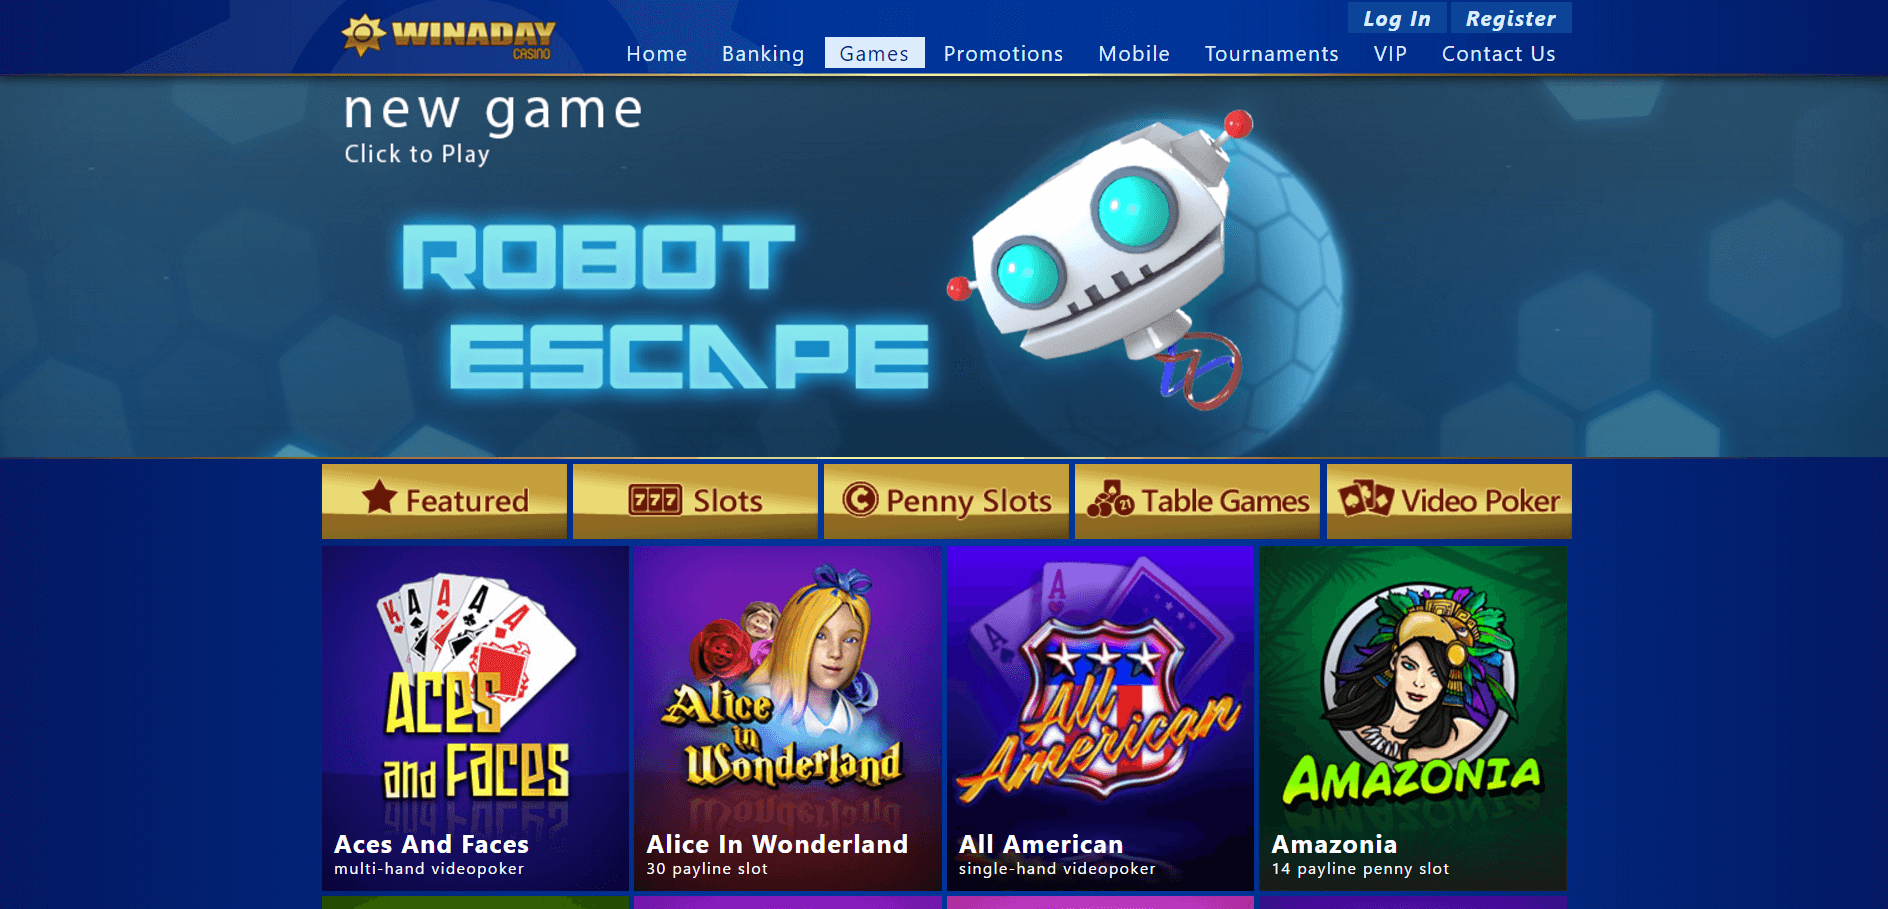 An image of the Winaday Casino Website games page